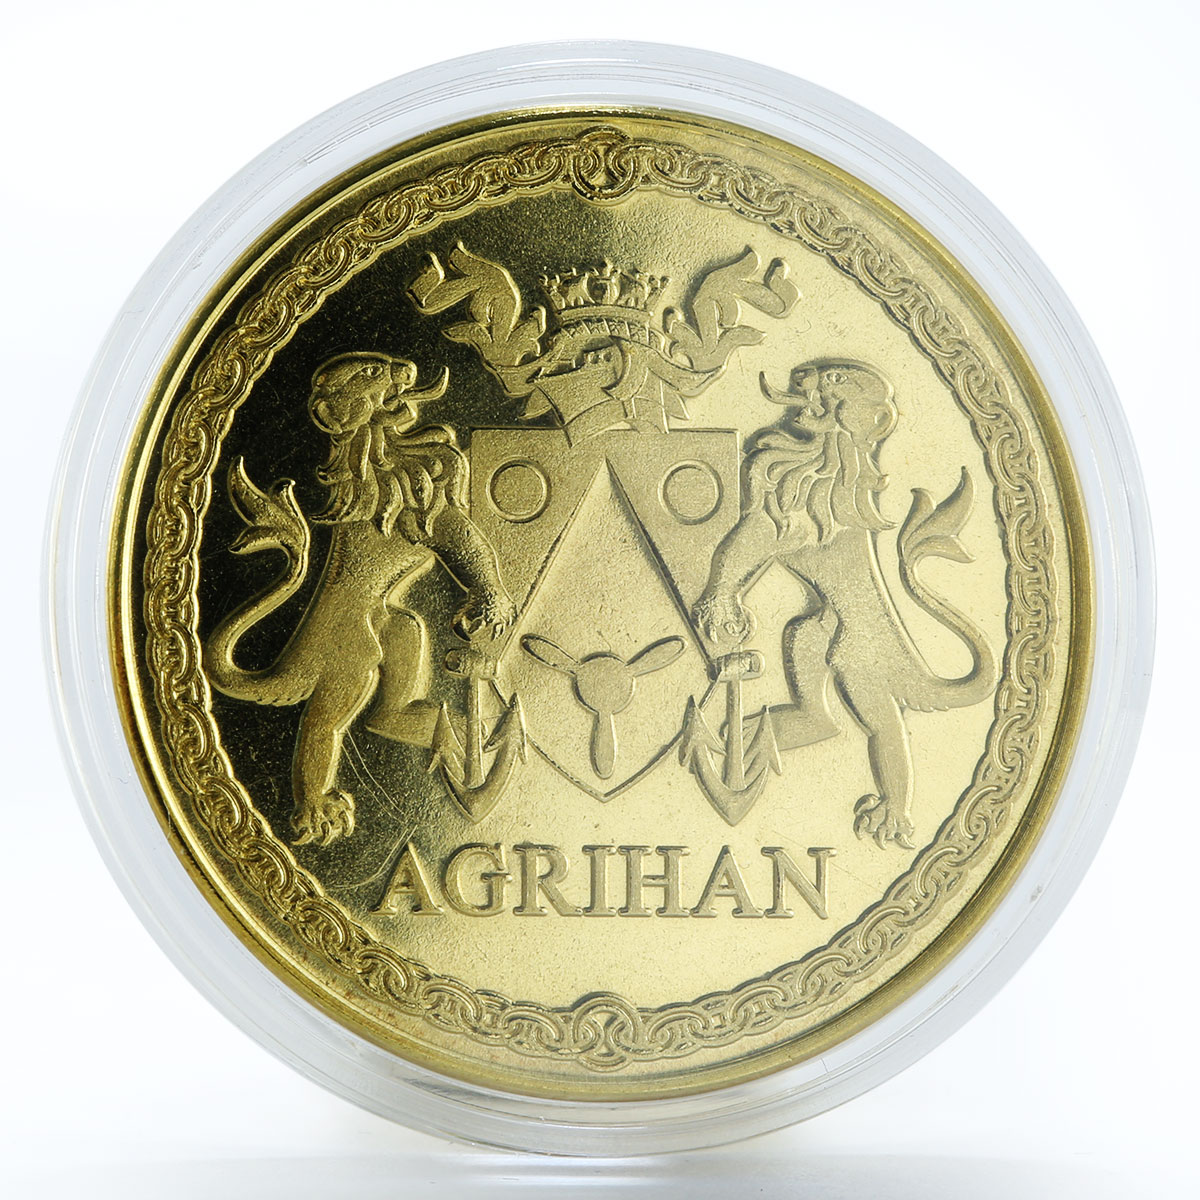 Agrihan 5 dollars 2018 2 coins sets Airplanes